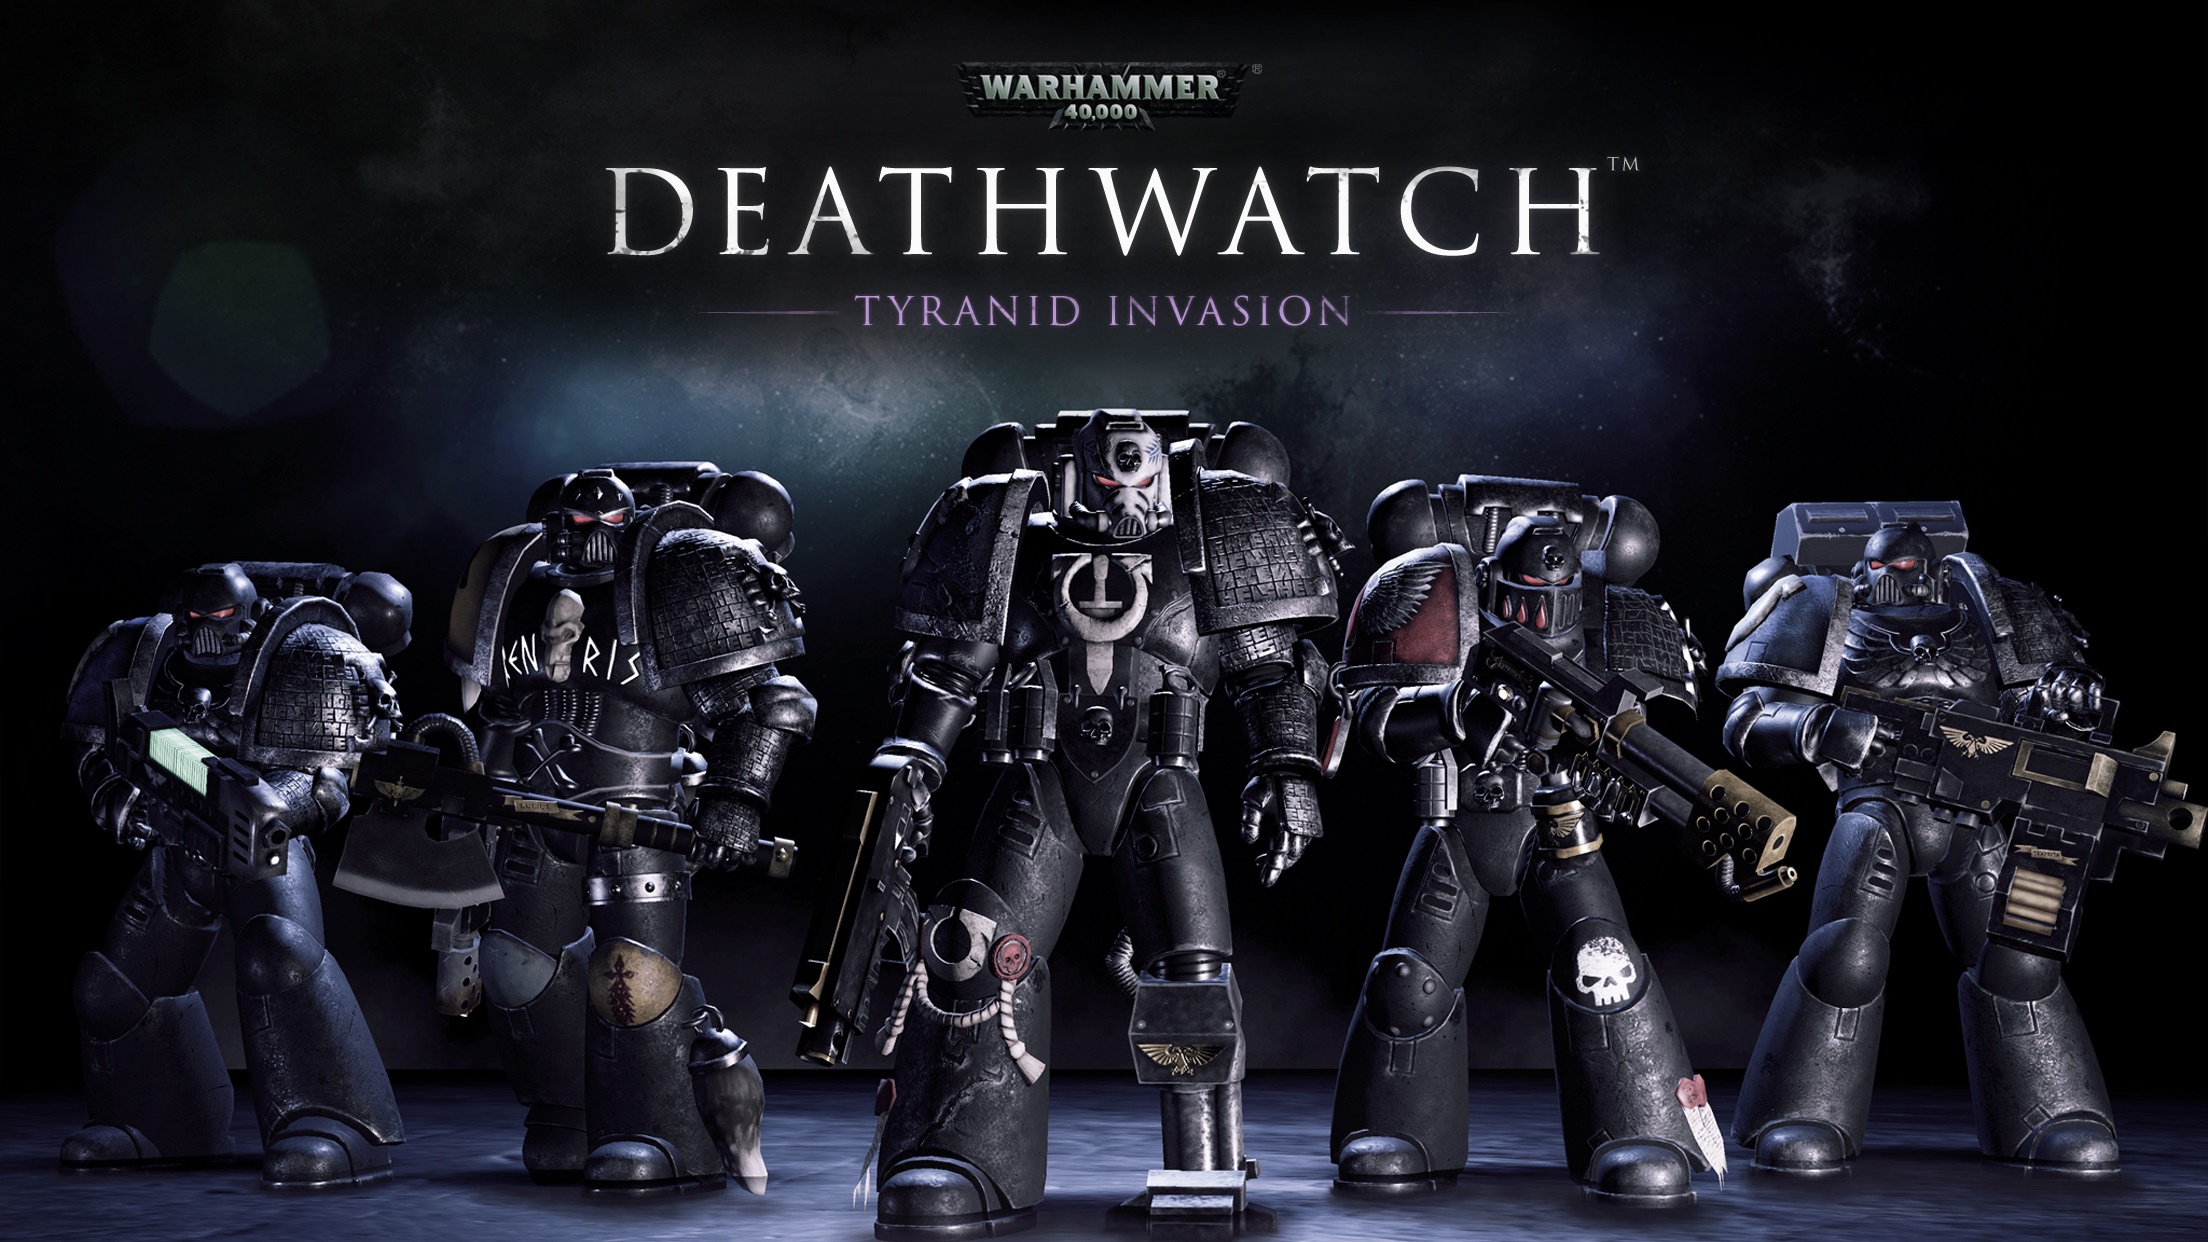 Screenshot do app Warhammer 40,000: Deathwatch - Tyranid Invasion